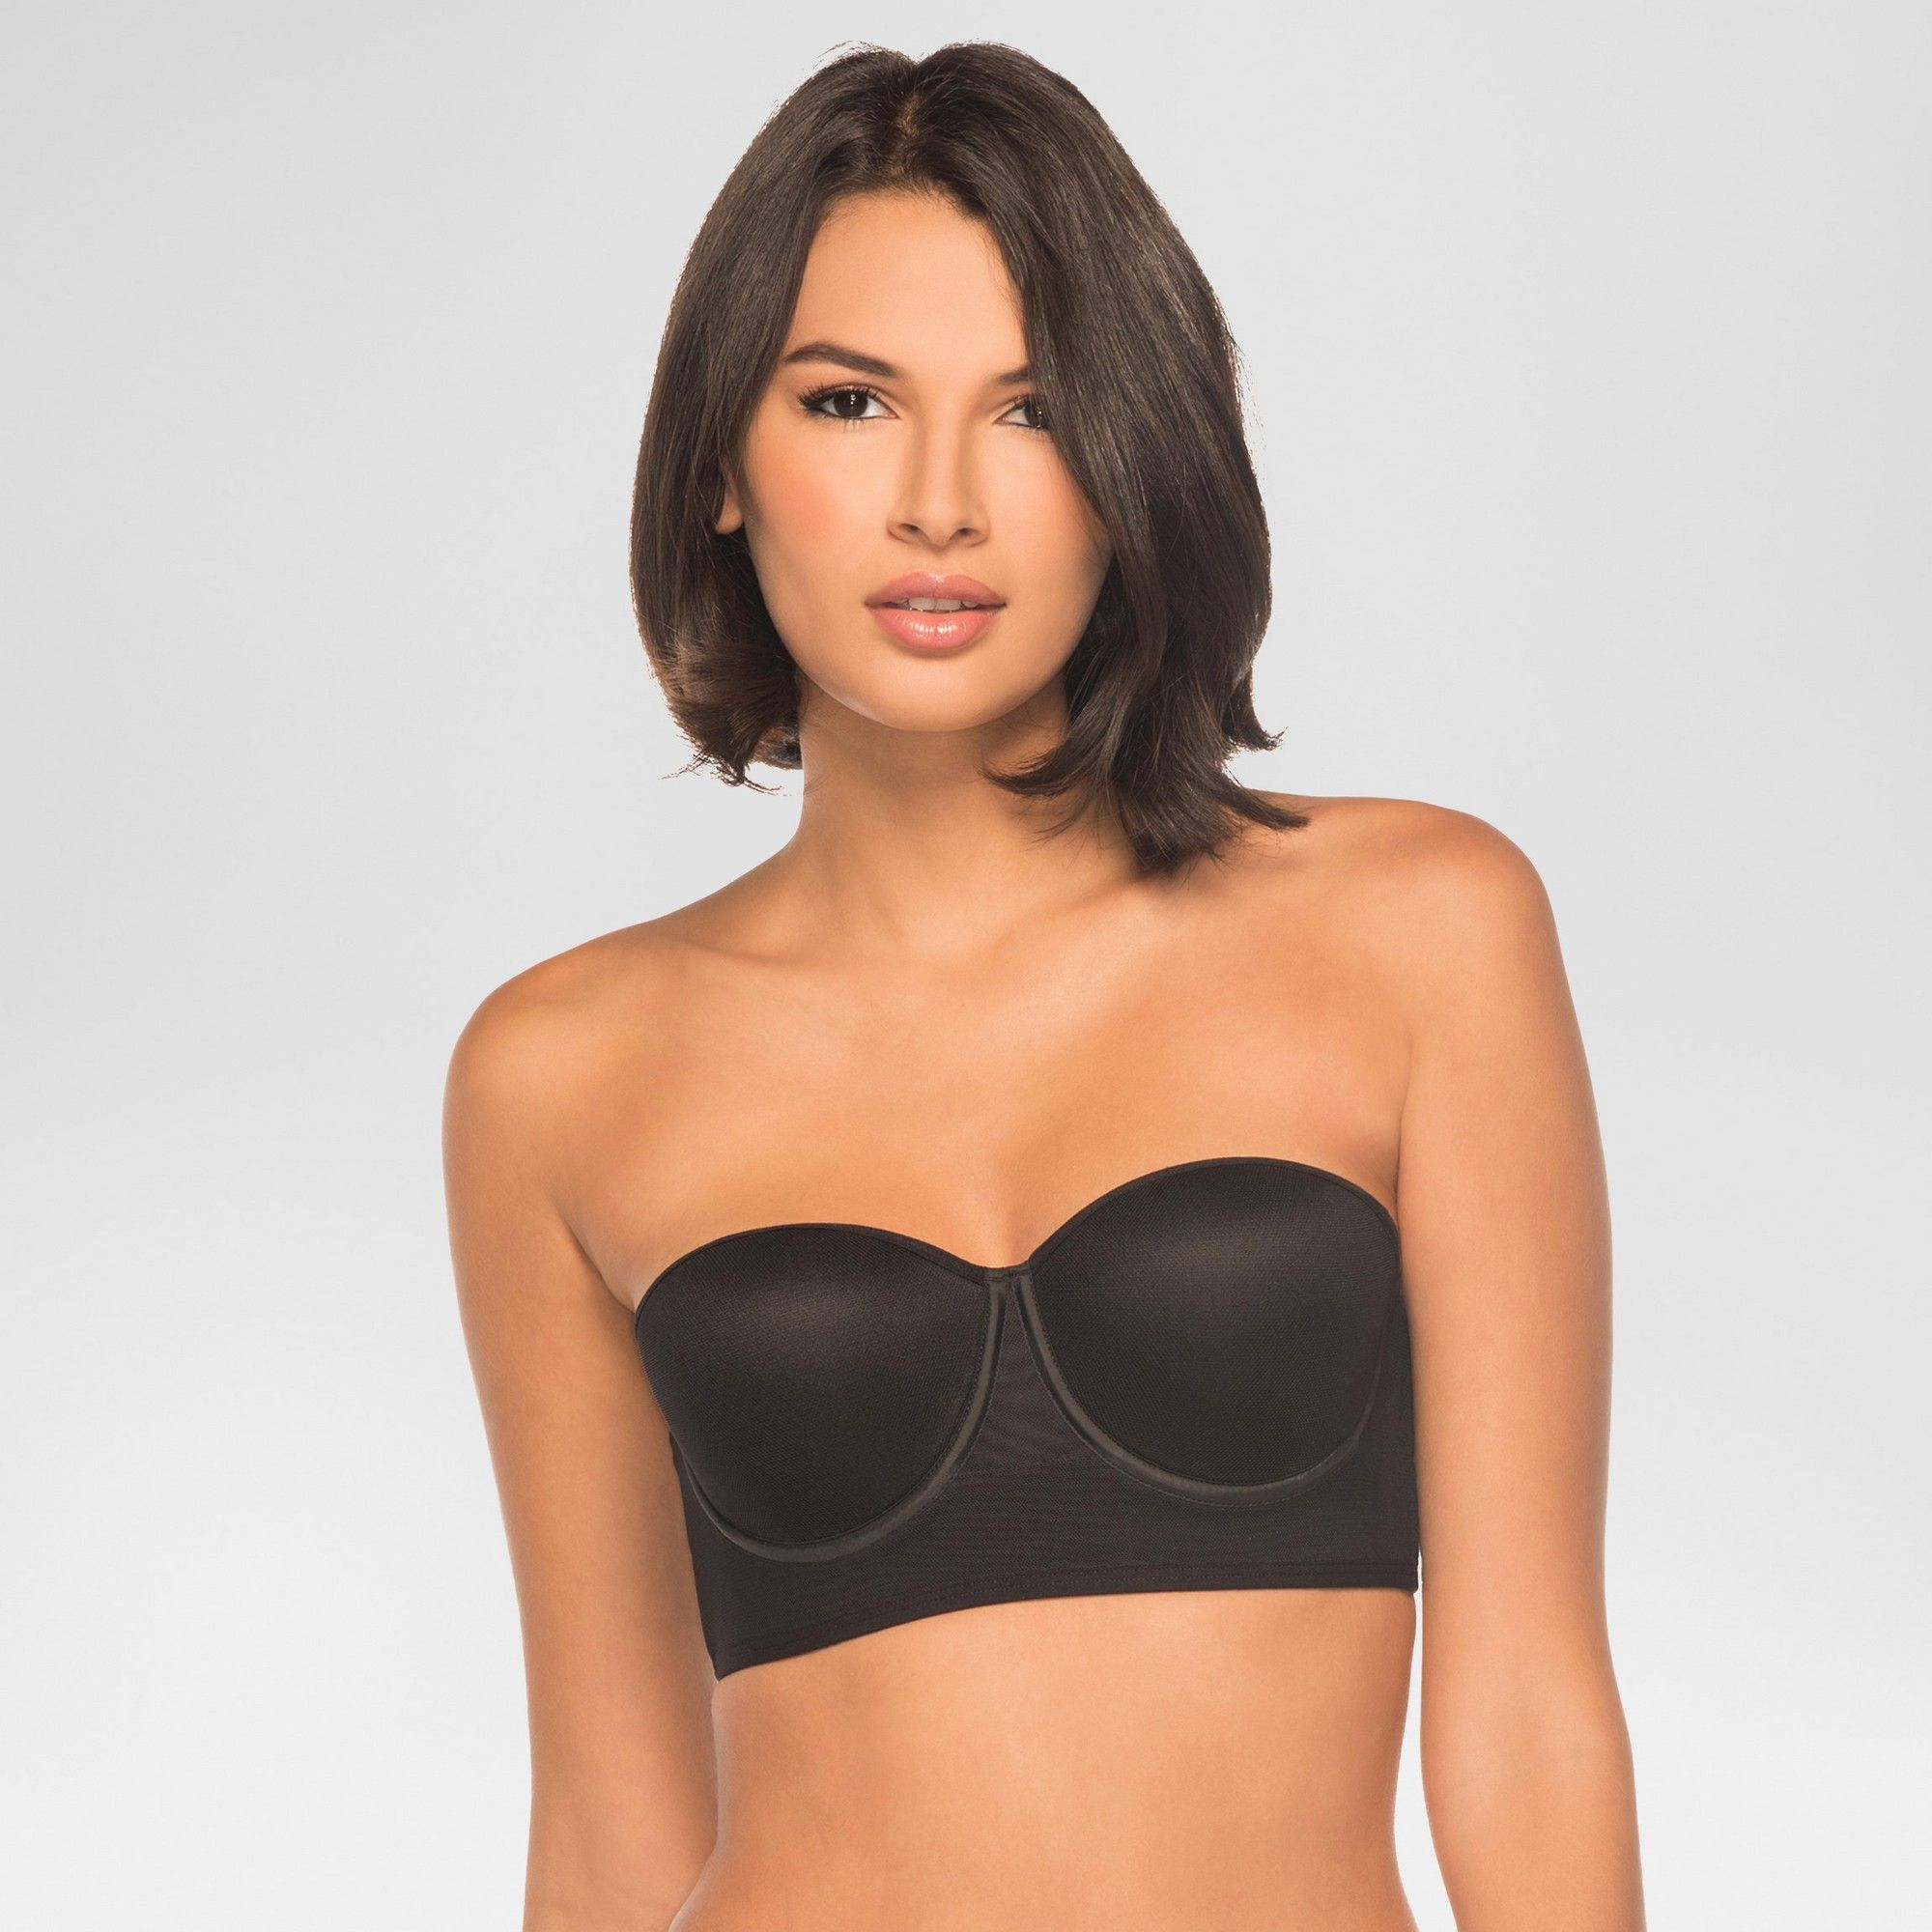 e65208b3ffa6b Annette Women's Control Bra with Extra Side Support - Black 34DD ...